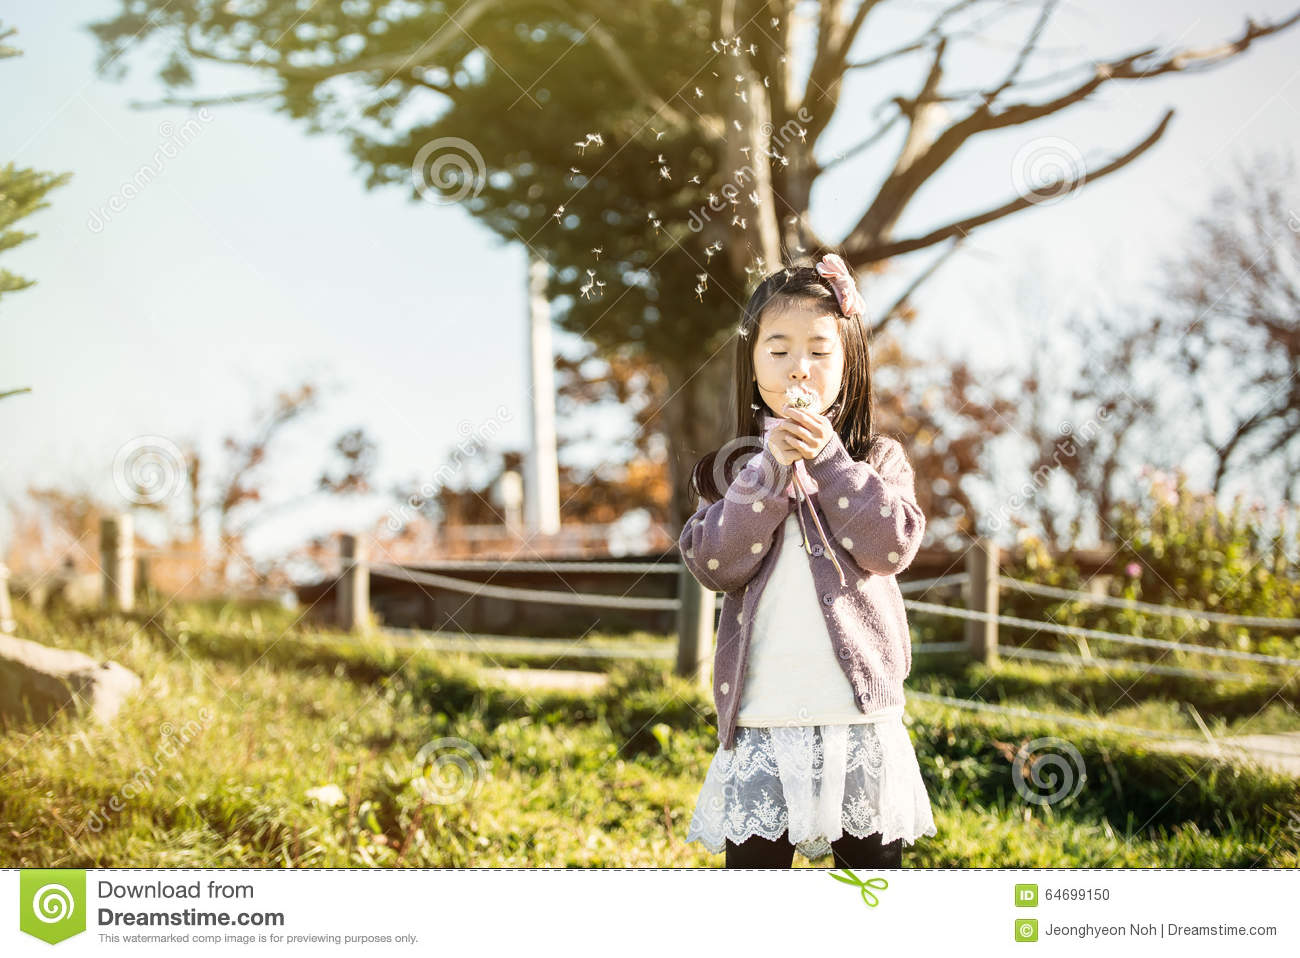 The child blowing a dandelion in a park.